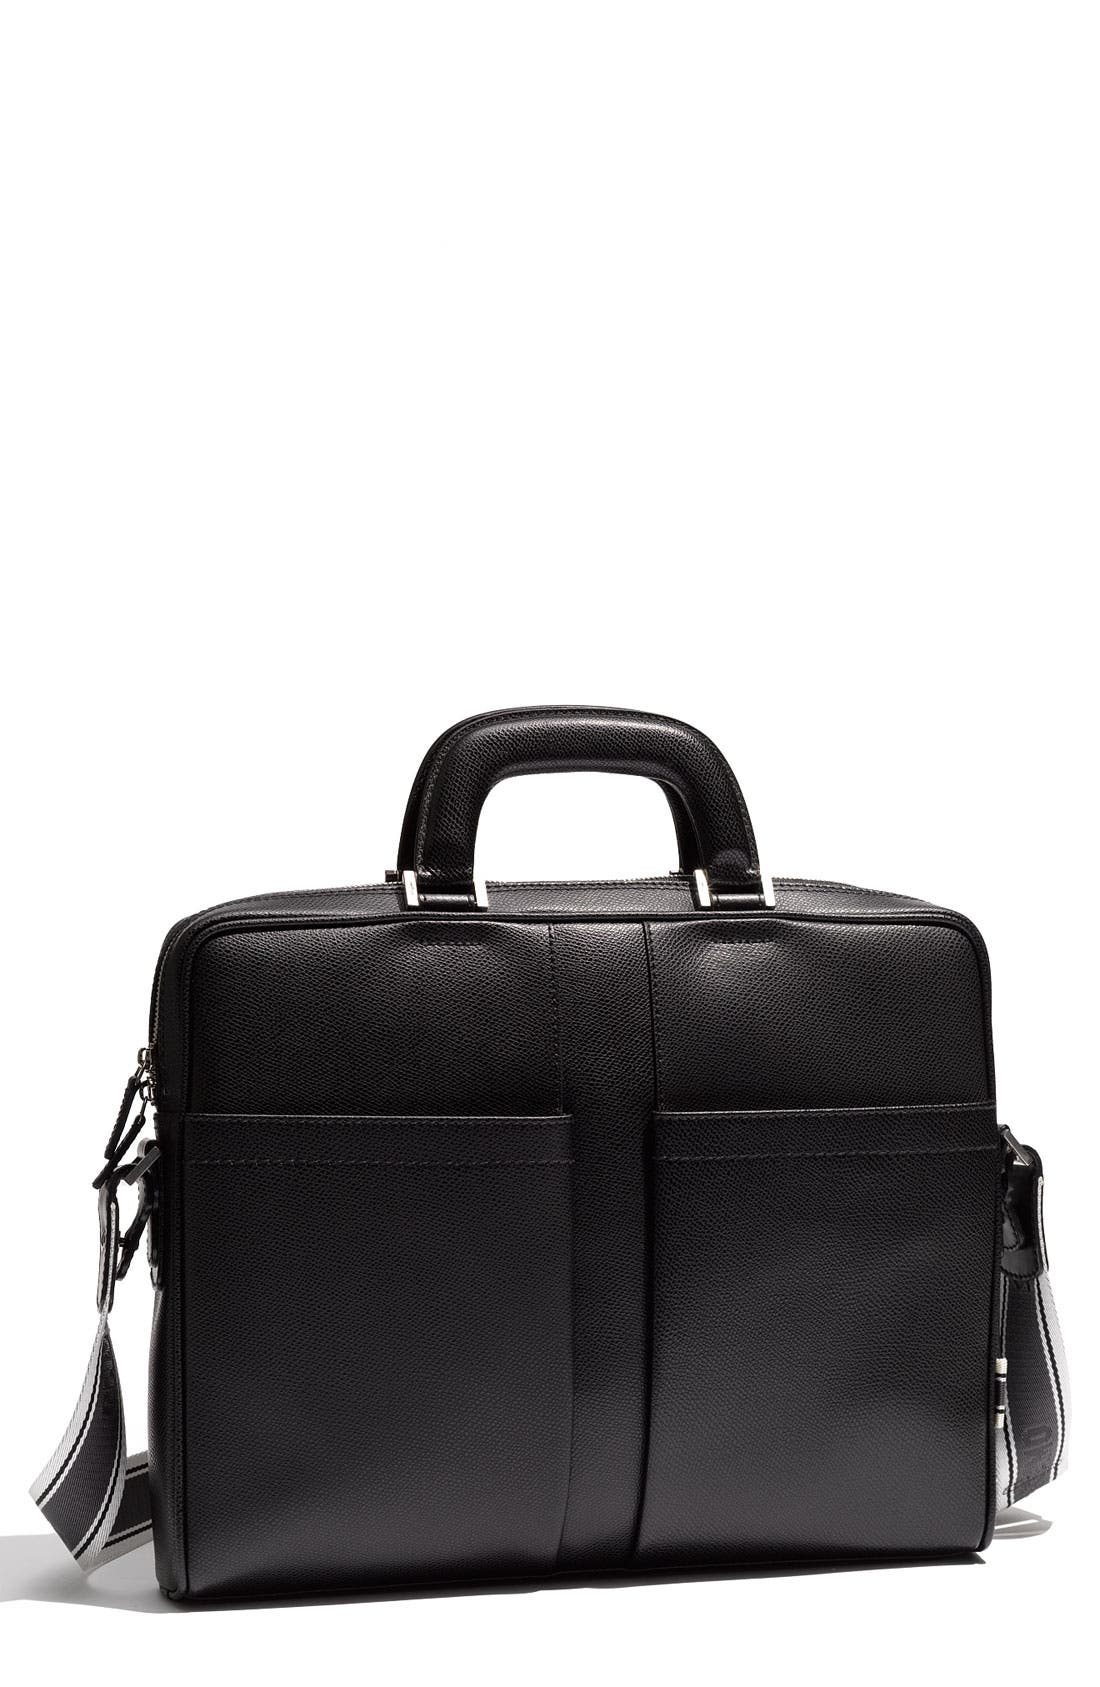 Main Image - Salvatore Ferragamo 'Los Angeles' Briefcase